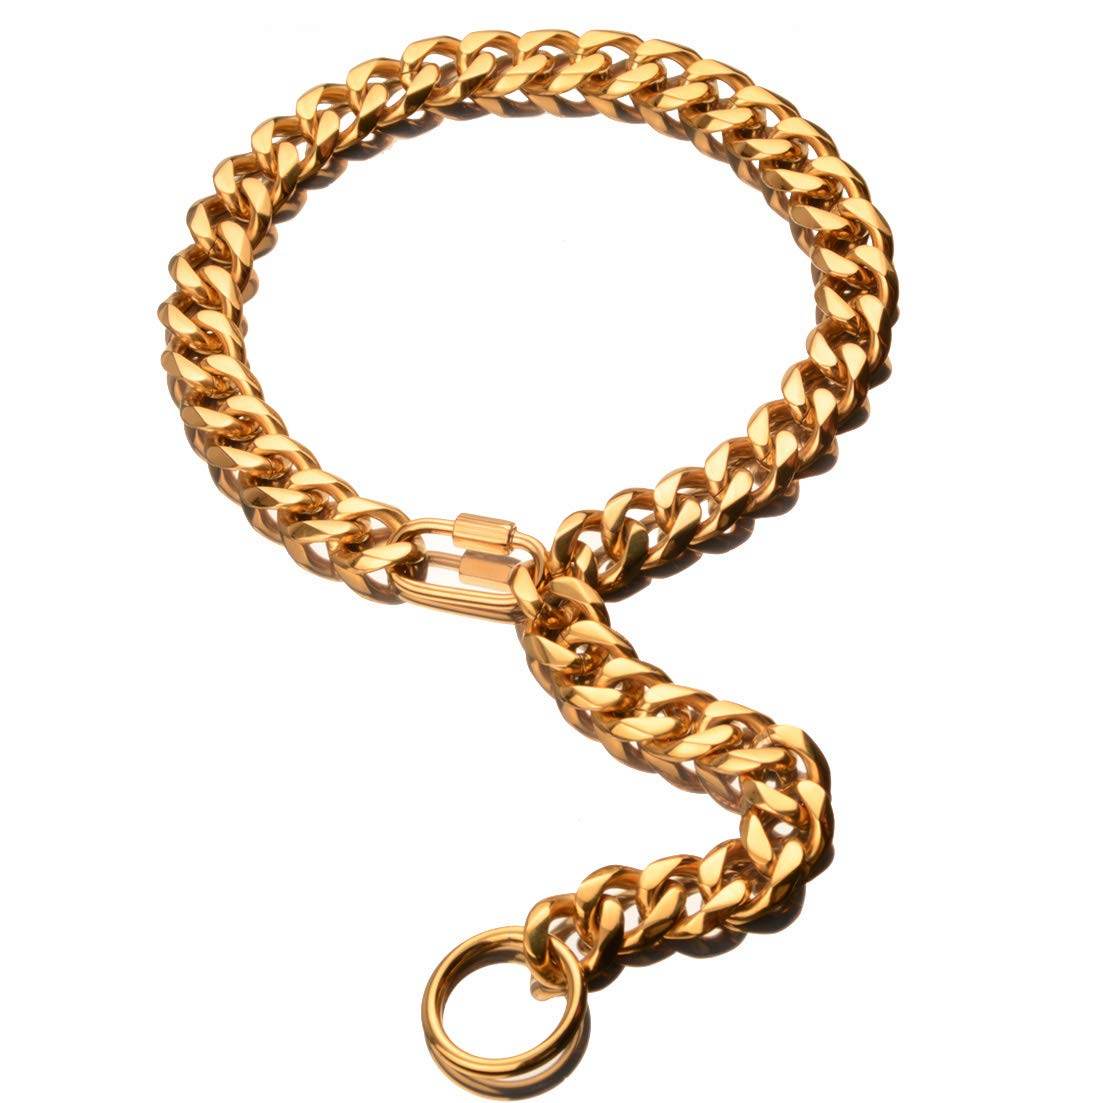 W/W Lifetime Custom Ultra Strong 19MM 18K Gold Plated Slip Chain Dog Collar - for Pit Bull Mastiff Bulldog Big Breeds, Adjustable Carabiner Clasp